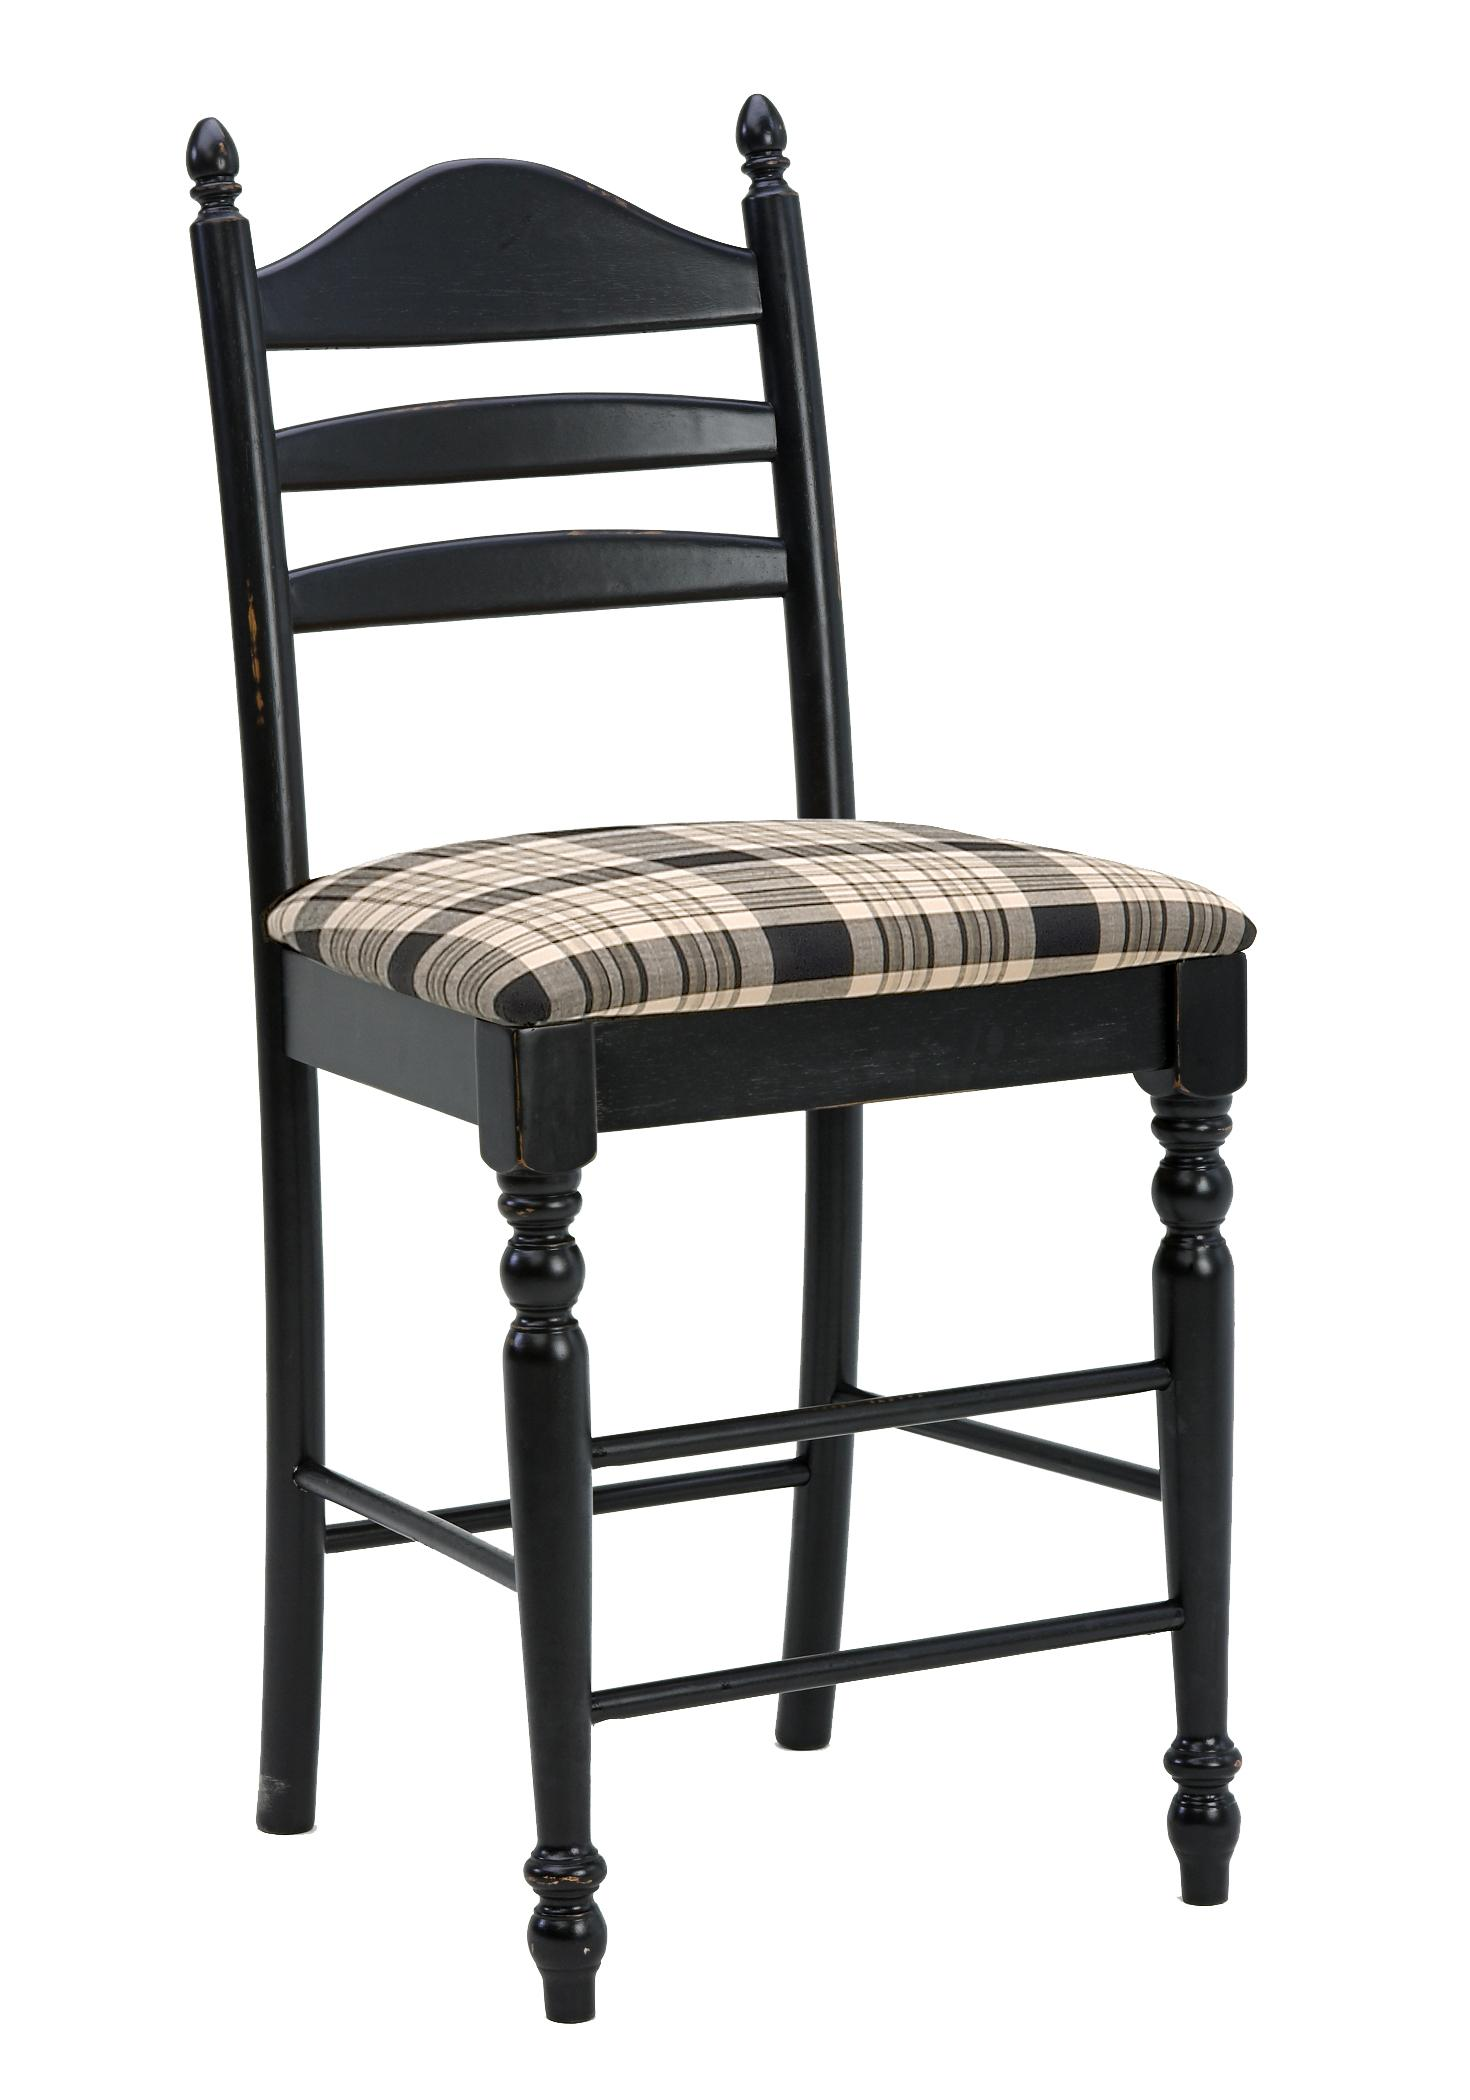 Intercon Hillside Village 24quot Ladder Back Bar Stool Rife  : products2Fintercon2Fcolor2Fhillside20village20hvhv bs 489c blk k24 b from www.rifeshomefurnitureonline.com size 1470 x 2100 jpeg 150kB